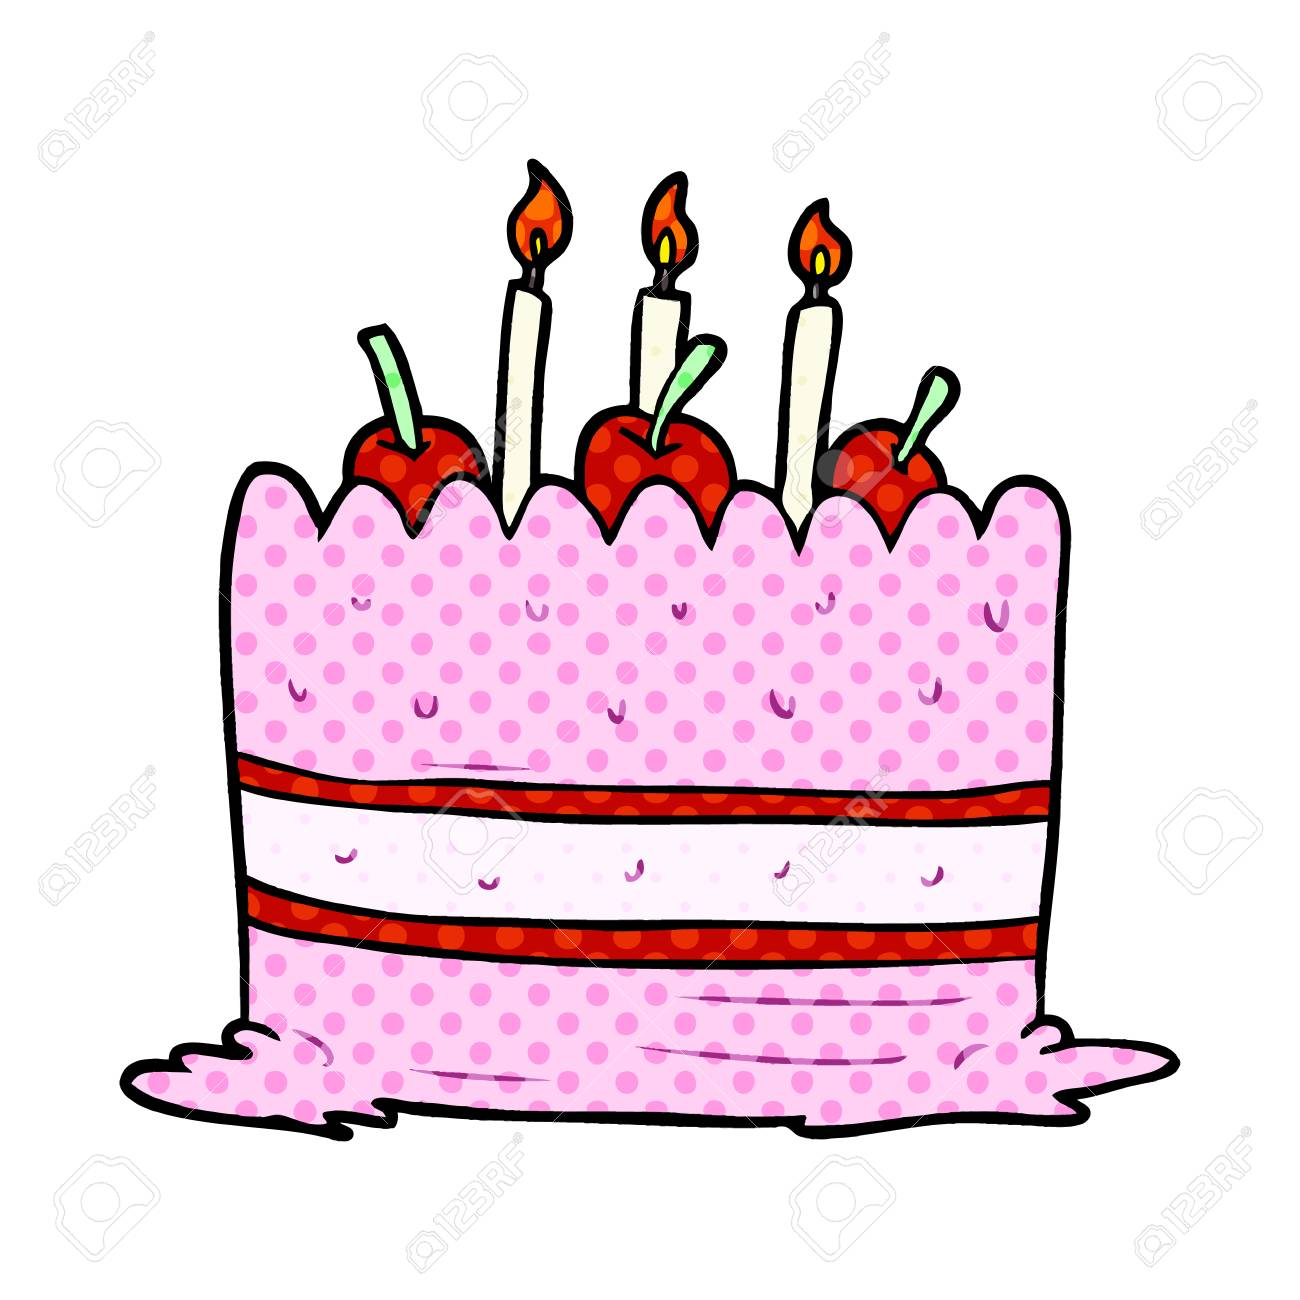 A Cartoon Birthday Cake Isolated On White Background Stock Vector